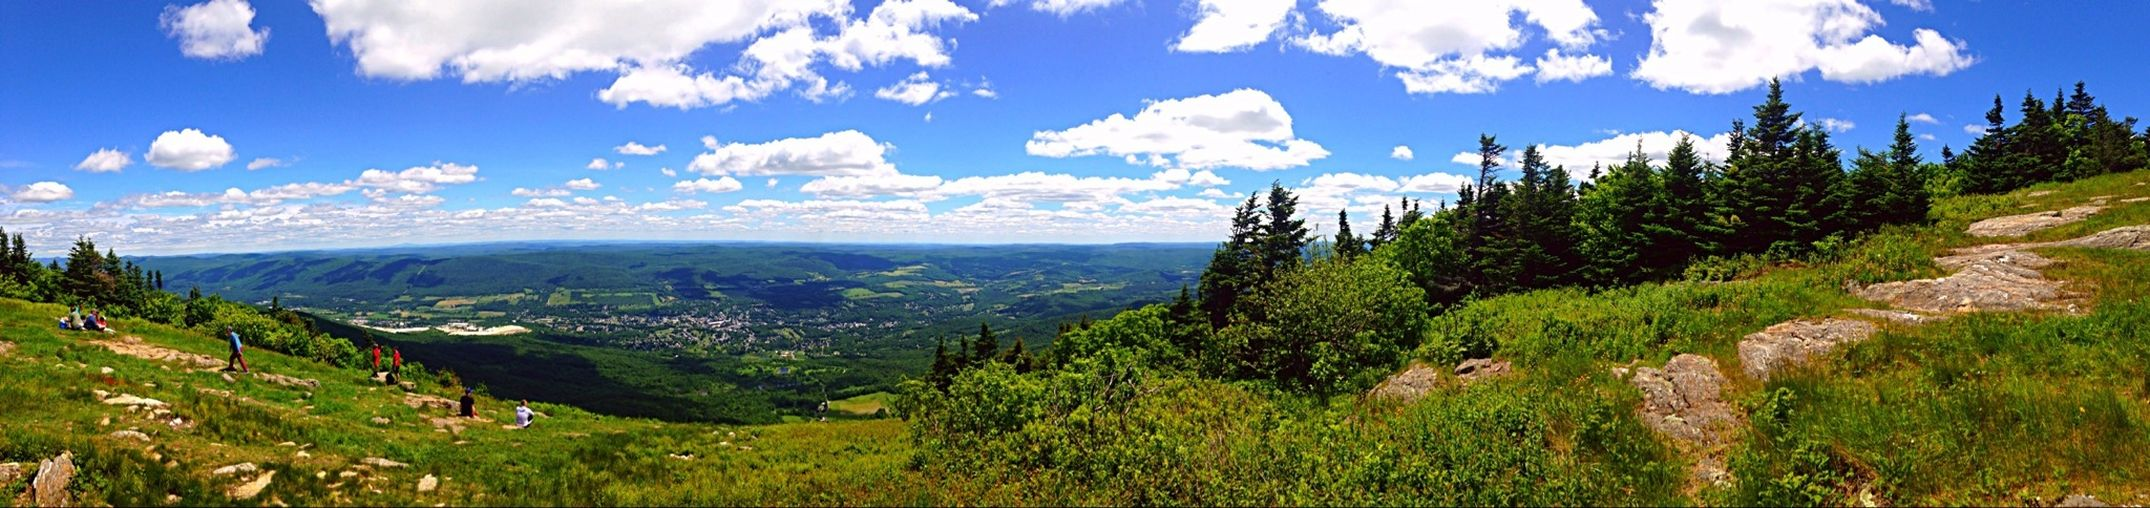 The view from the top of mount greylock in massachussetts Hiking Panorama Sky Porn Beautiful